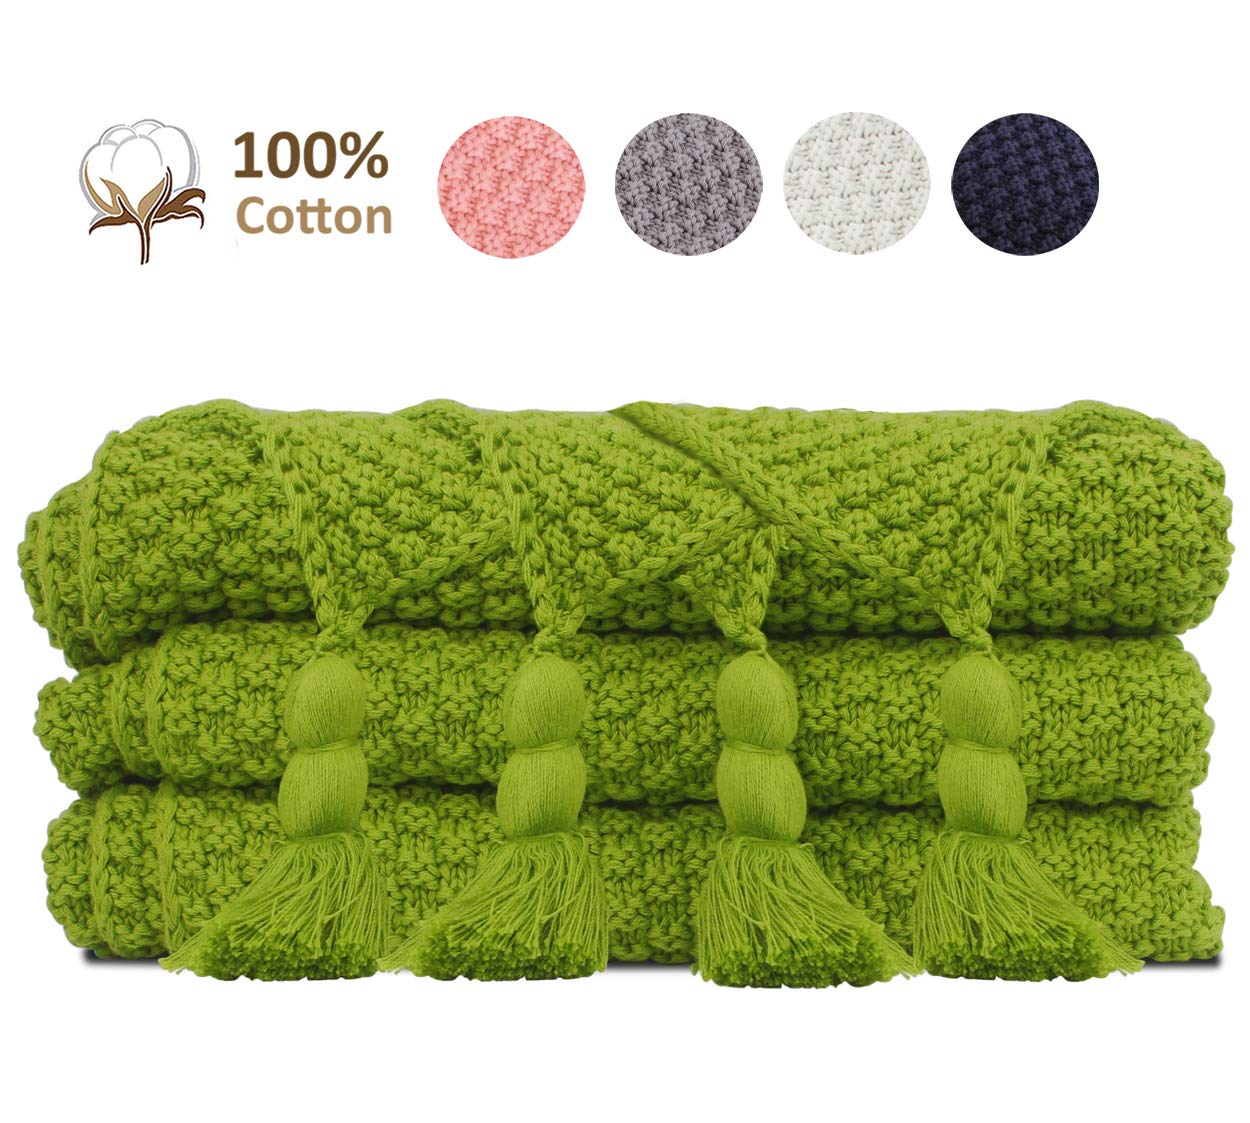 JSHANMEI Super Soft Knit Throw Blanket, Cozy 100% Cotton Blanket Home Decor Bedding Blankets with Handmade Tassels for Couch Sofa Bed Beach Picnic 51x70